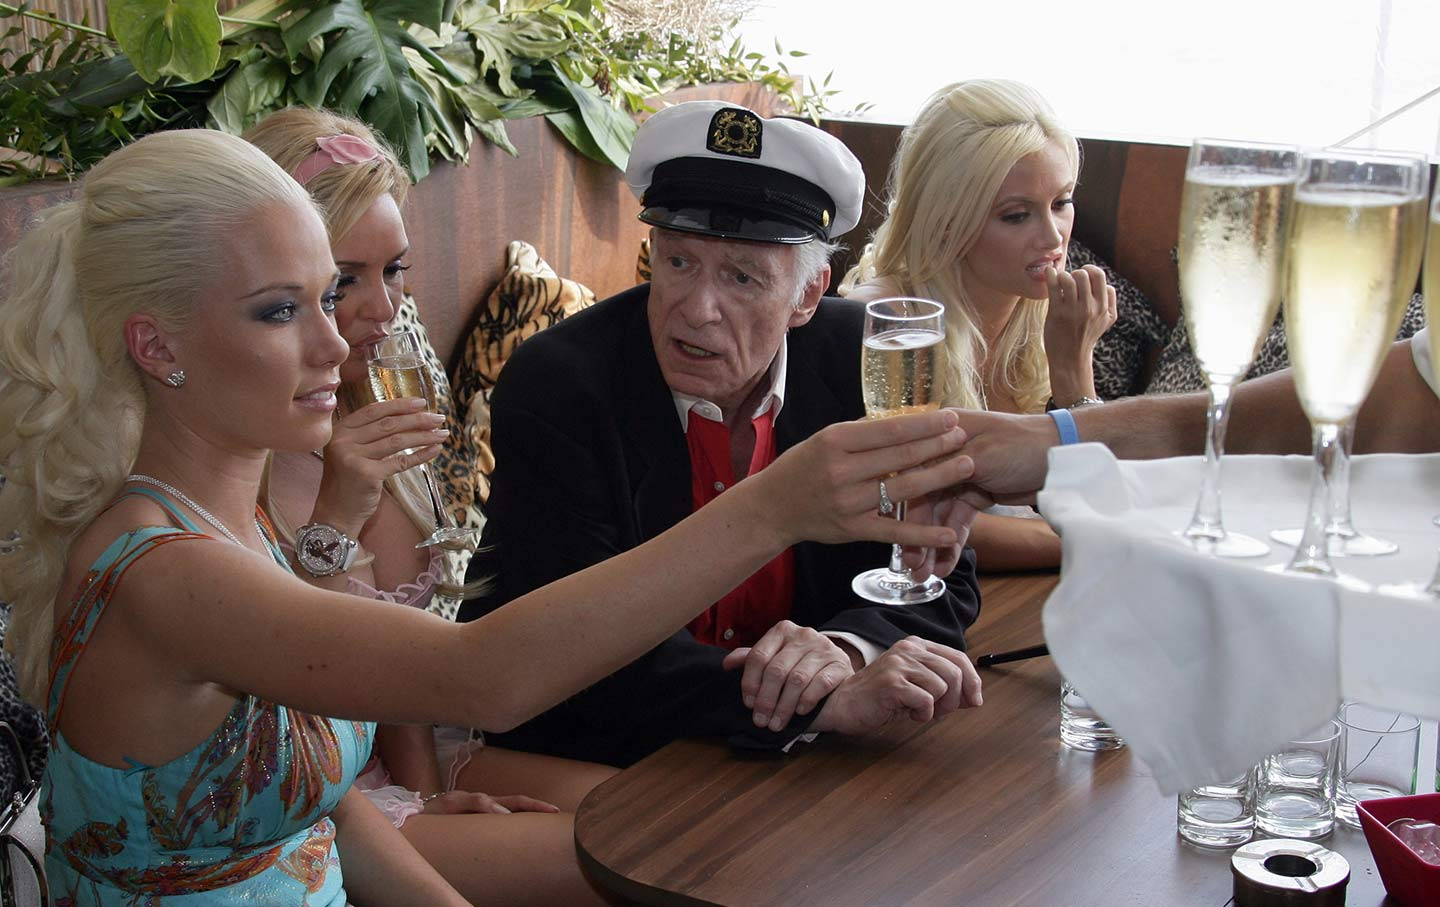 Hefner with his girlfriends